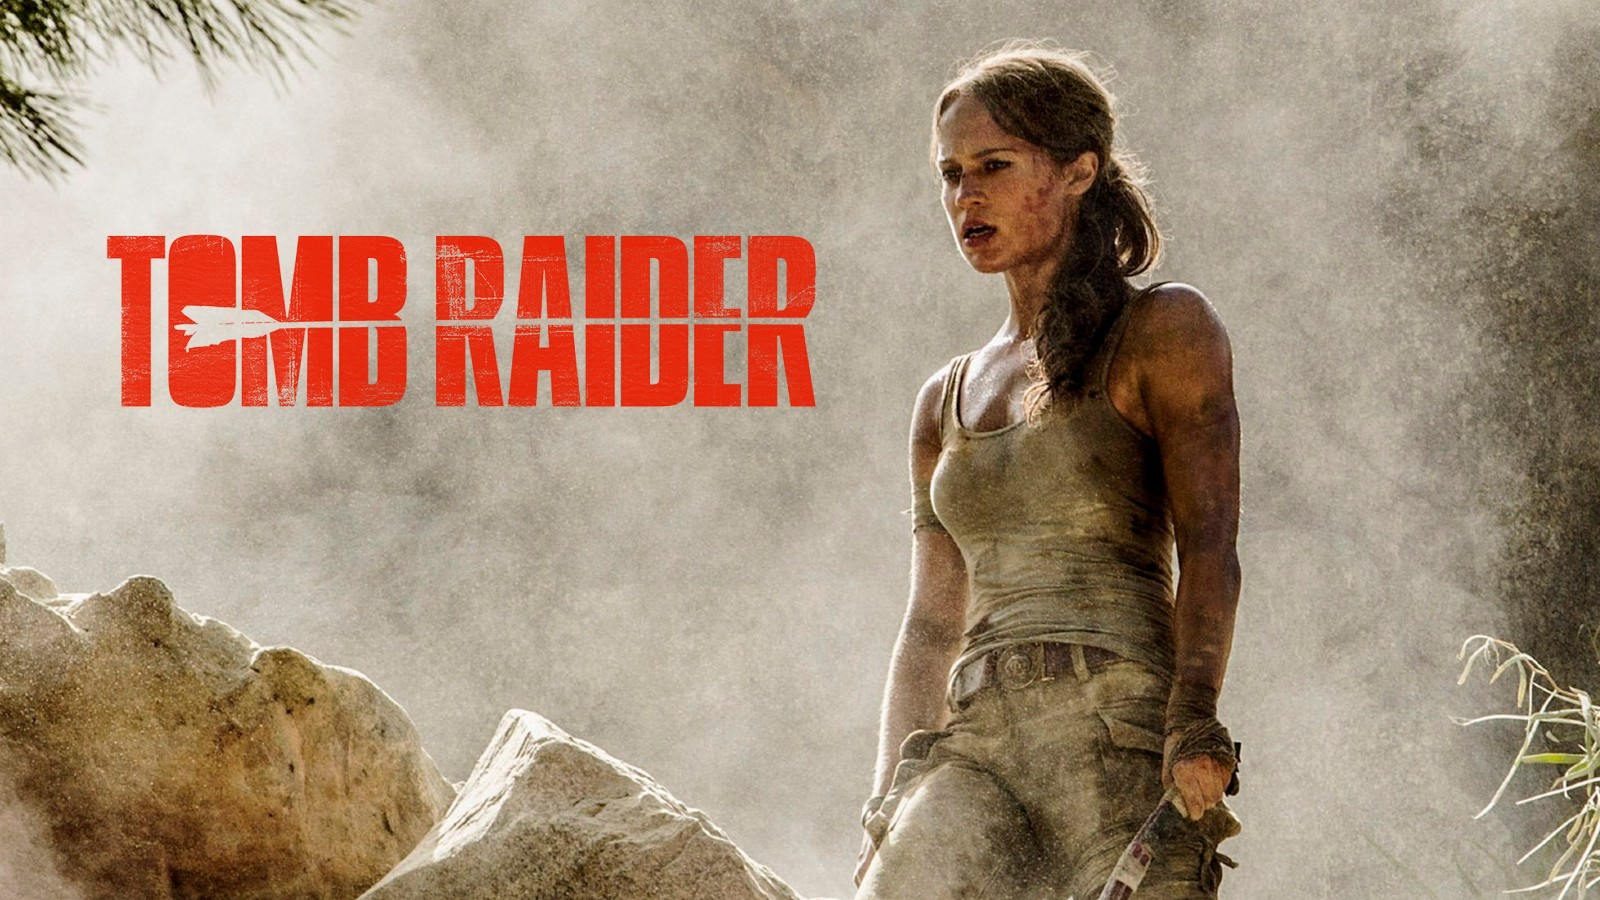 Lara Croft with the Tomb Raider logo